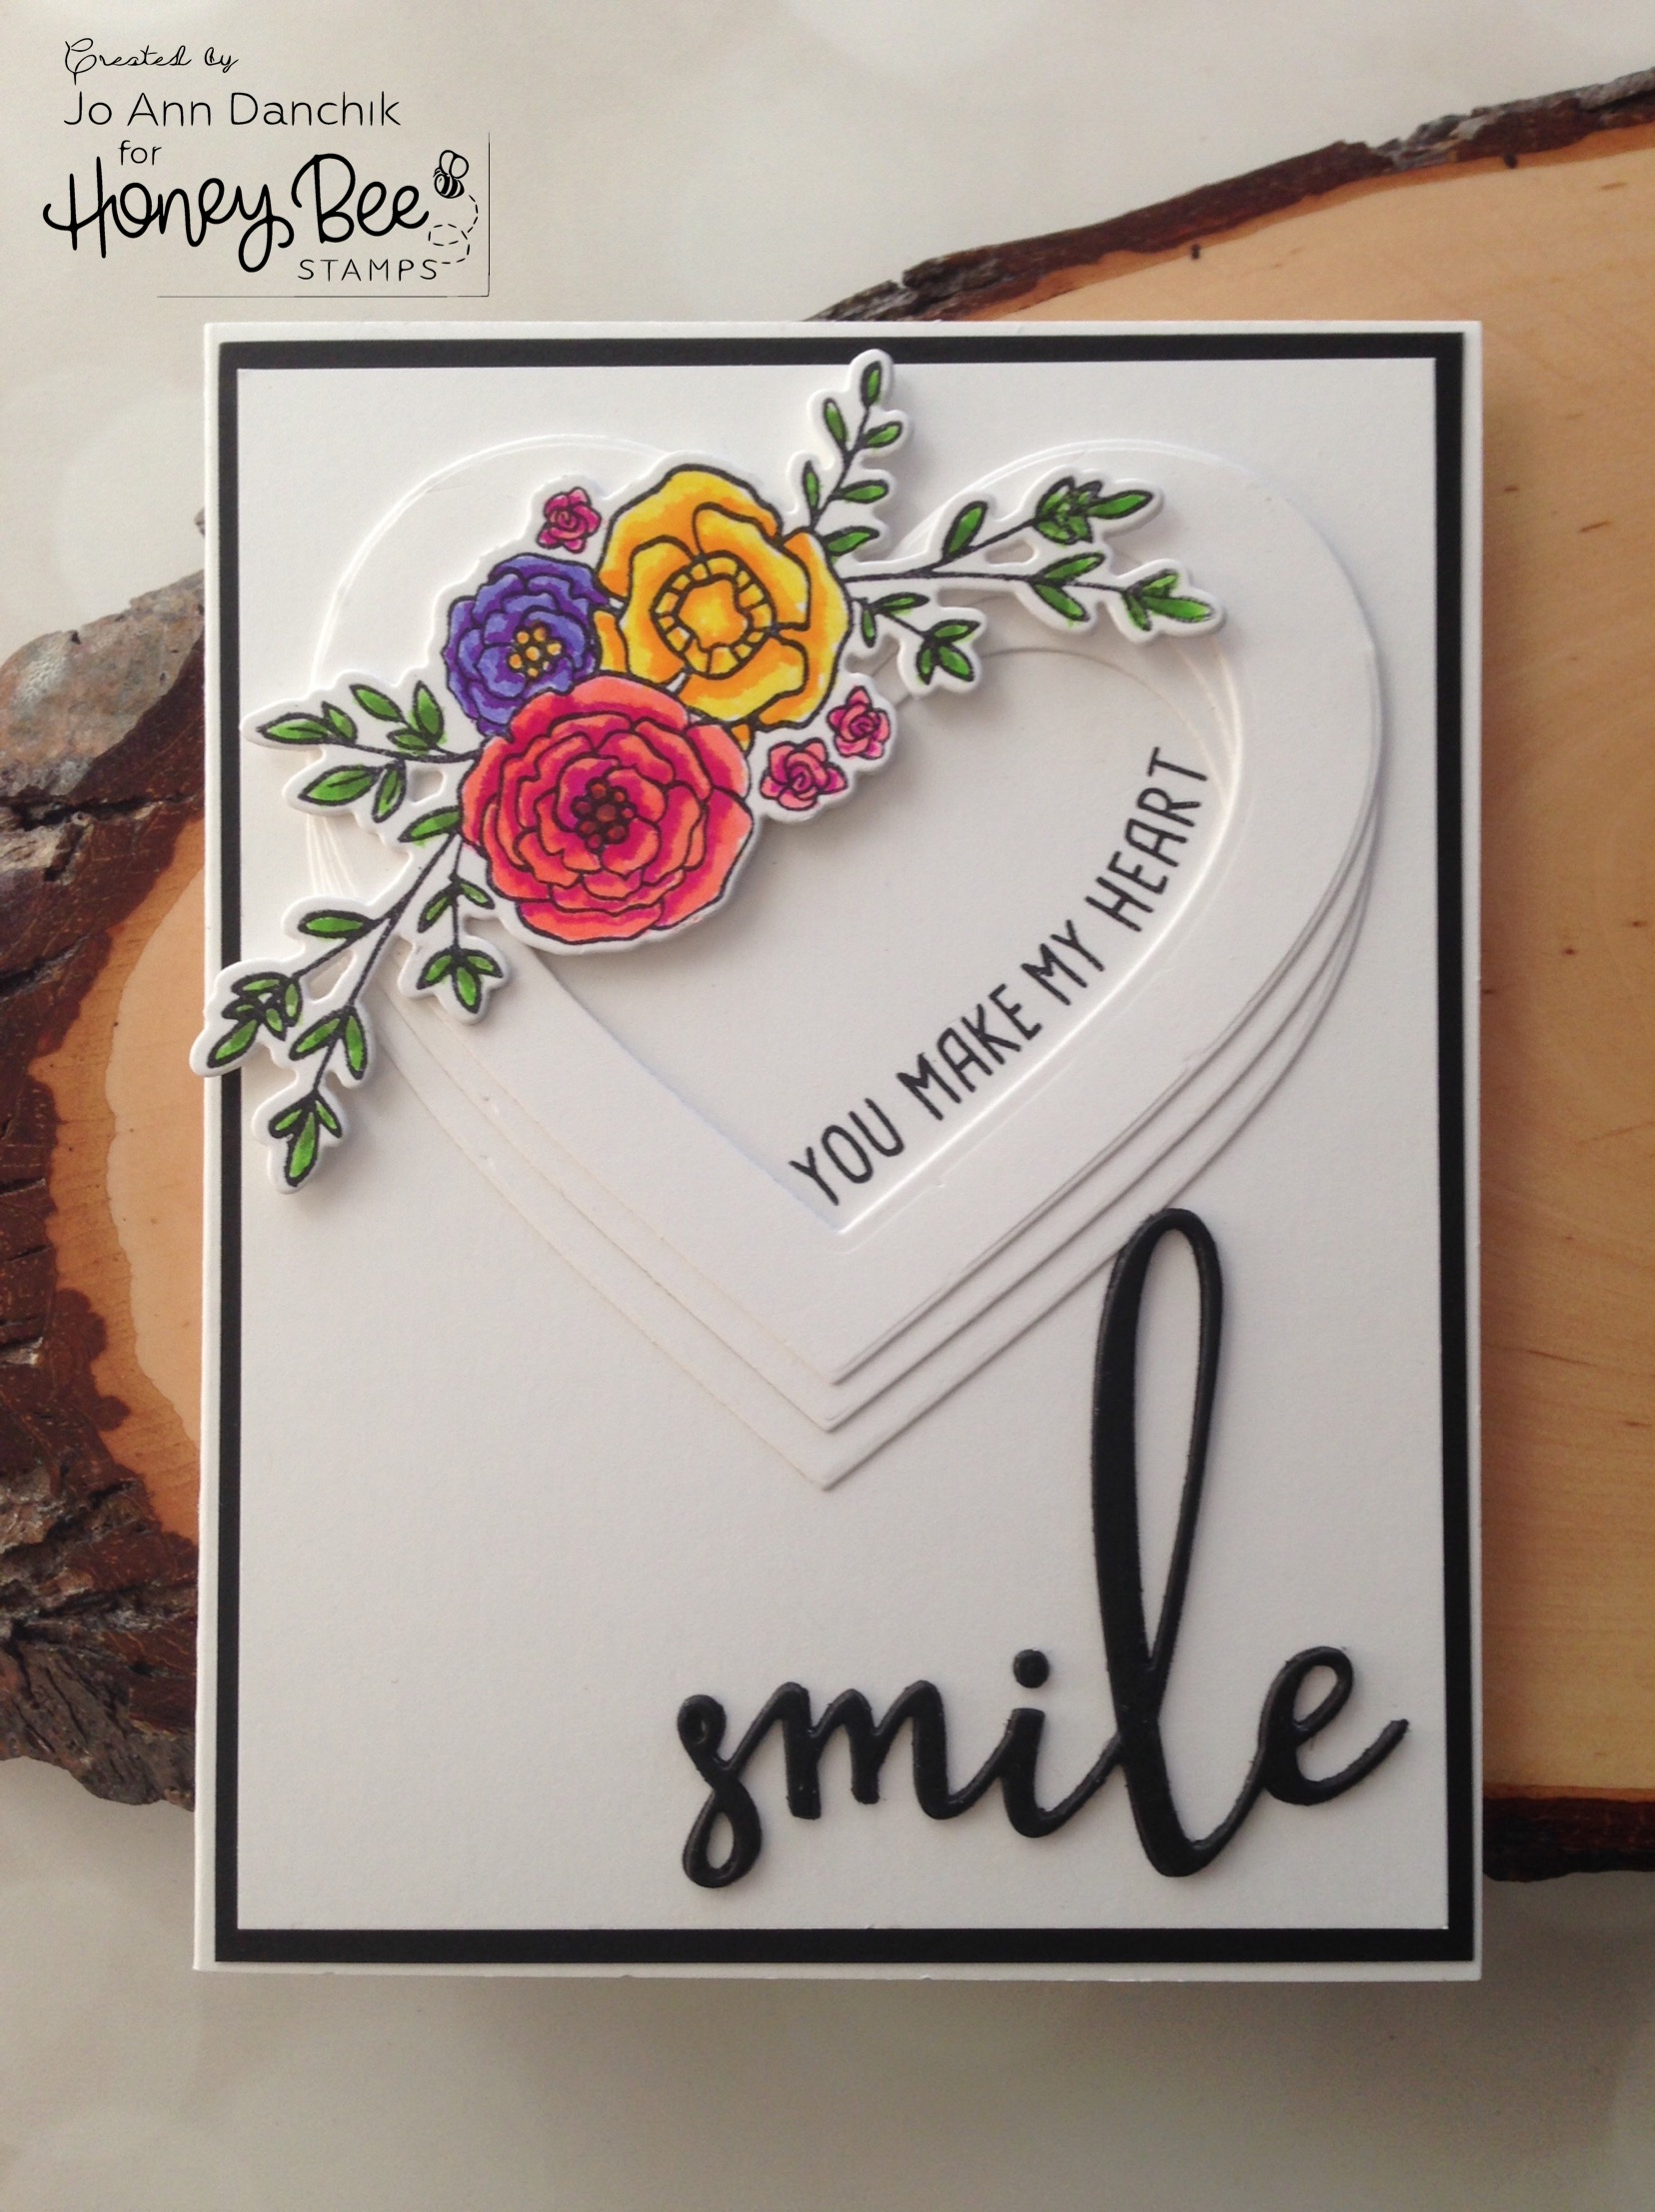 Creative Sundays with Jo Ann: You Make My Heart Smile